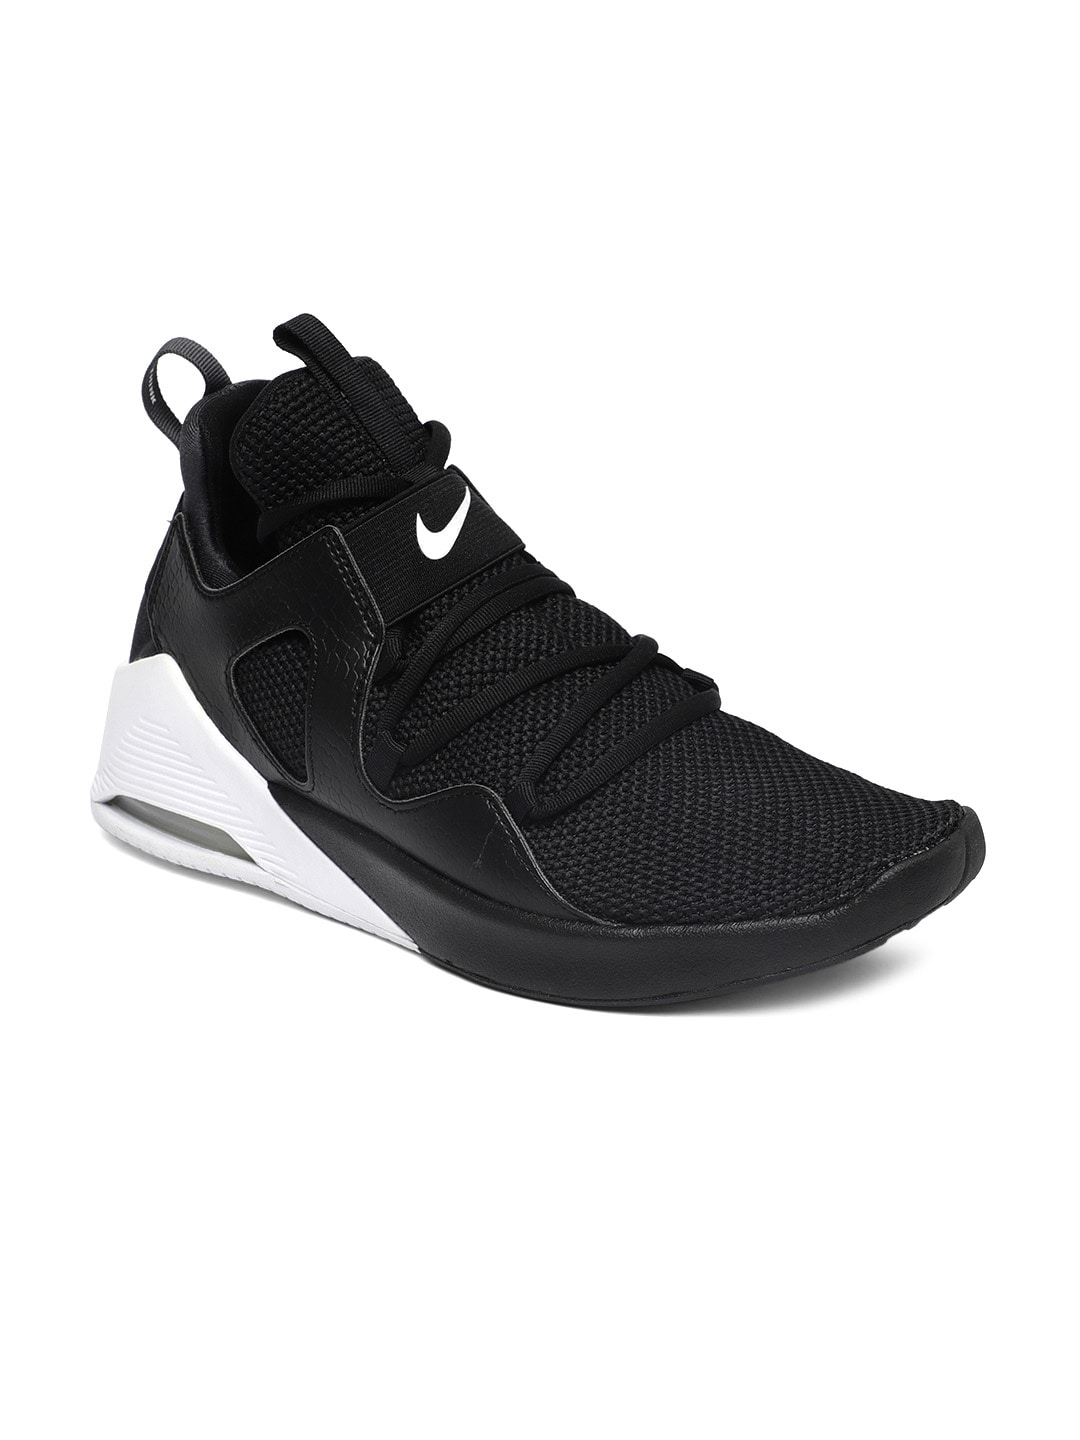 new product 43b7e 2af6a Nike Air Max - Buy Nike Air Max Shoes, Bags, Sneakers in India